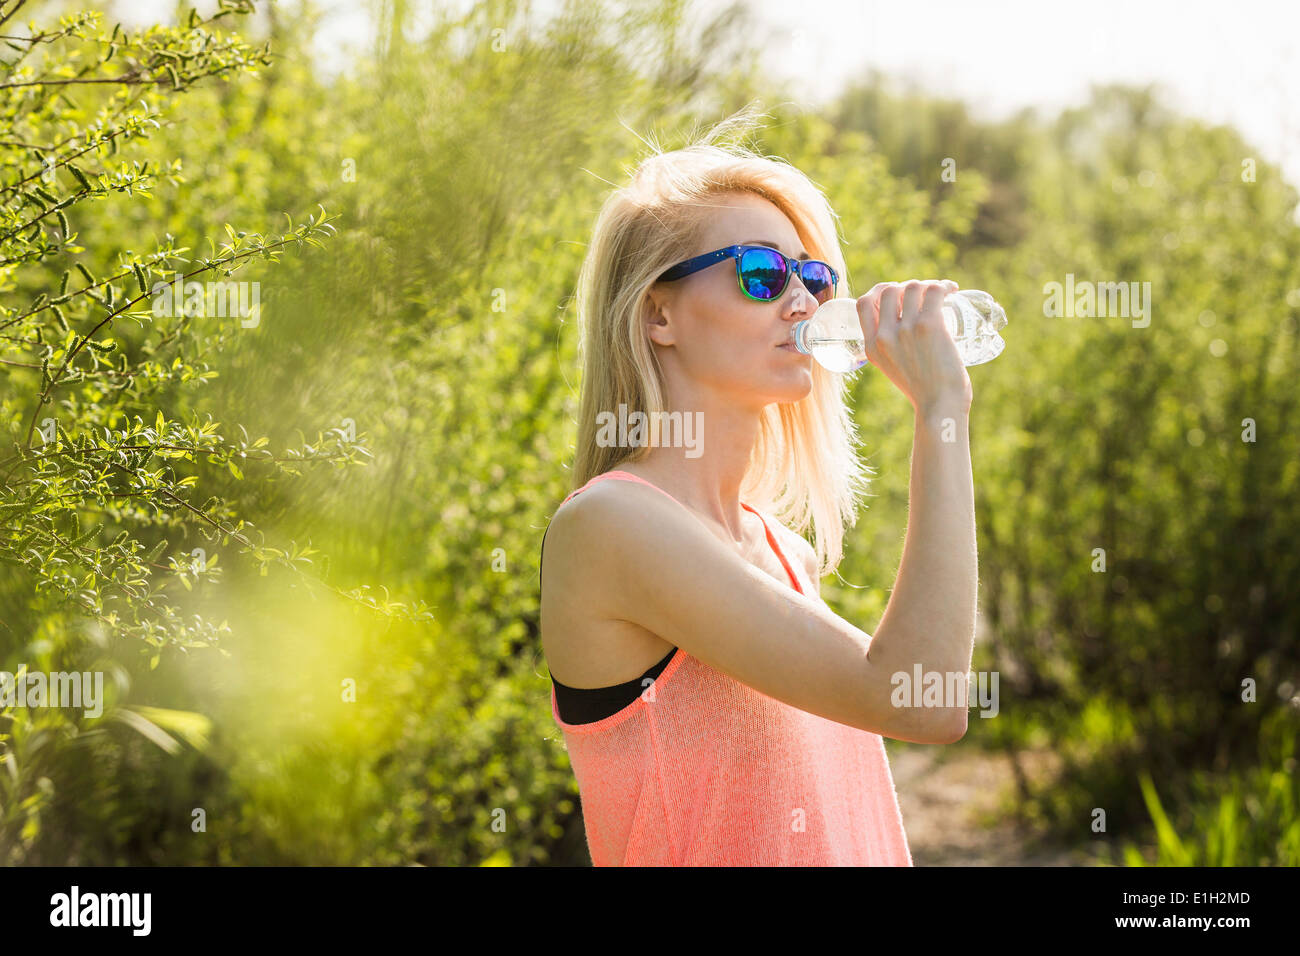 Young woman in park drinking bottle of water - Stock Image